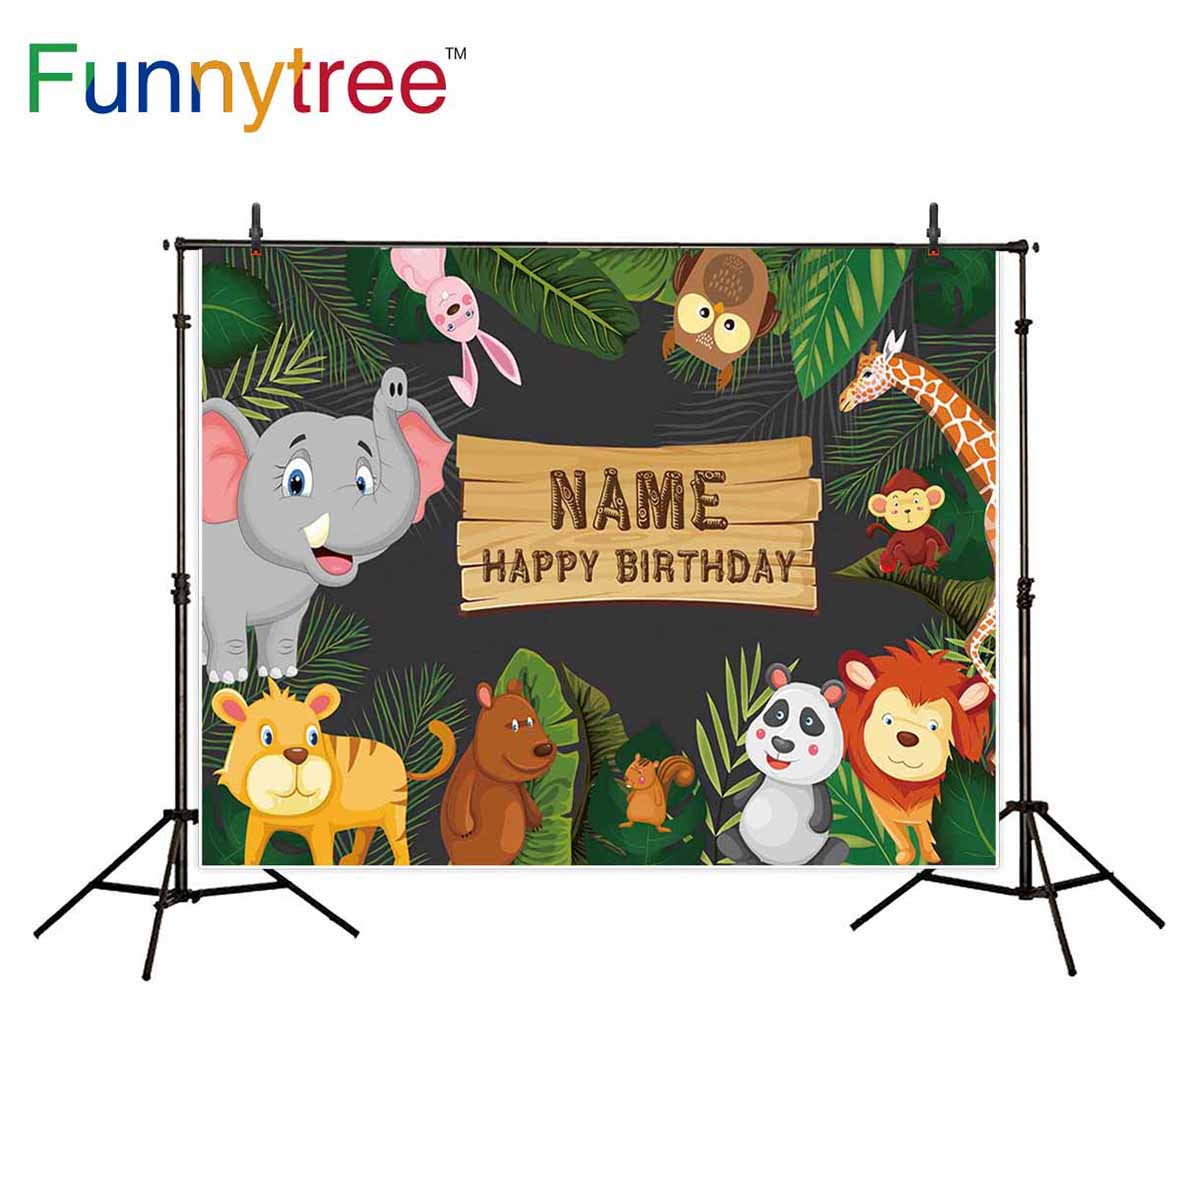 Funnytree birthday backgrounds for photography studio Jungle party animals cartoon leaves forest kid backdrop printed photocall bamboo forest printed waterproof fabric shower curtain